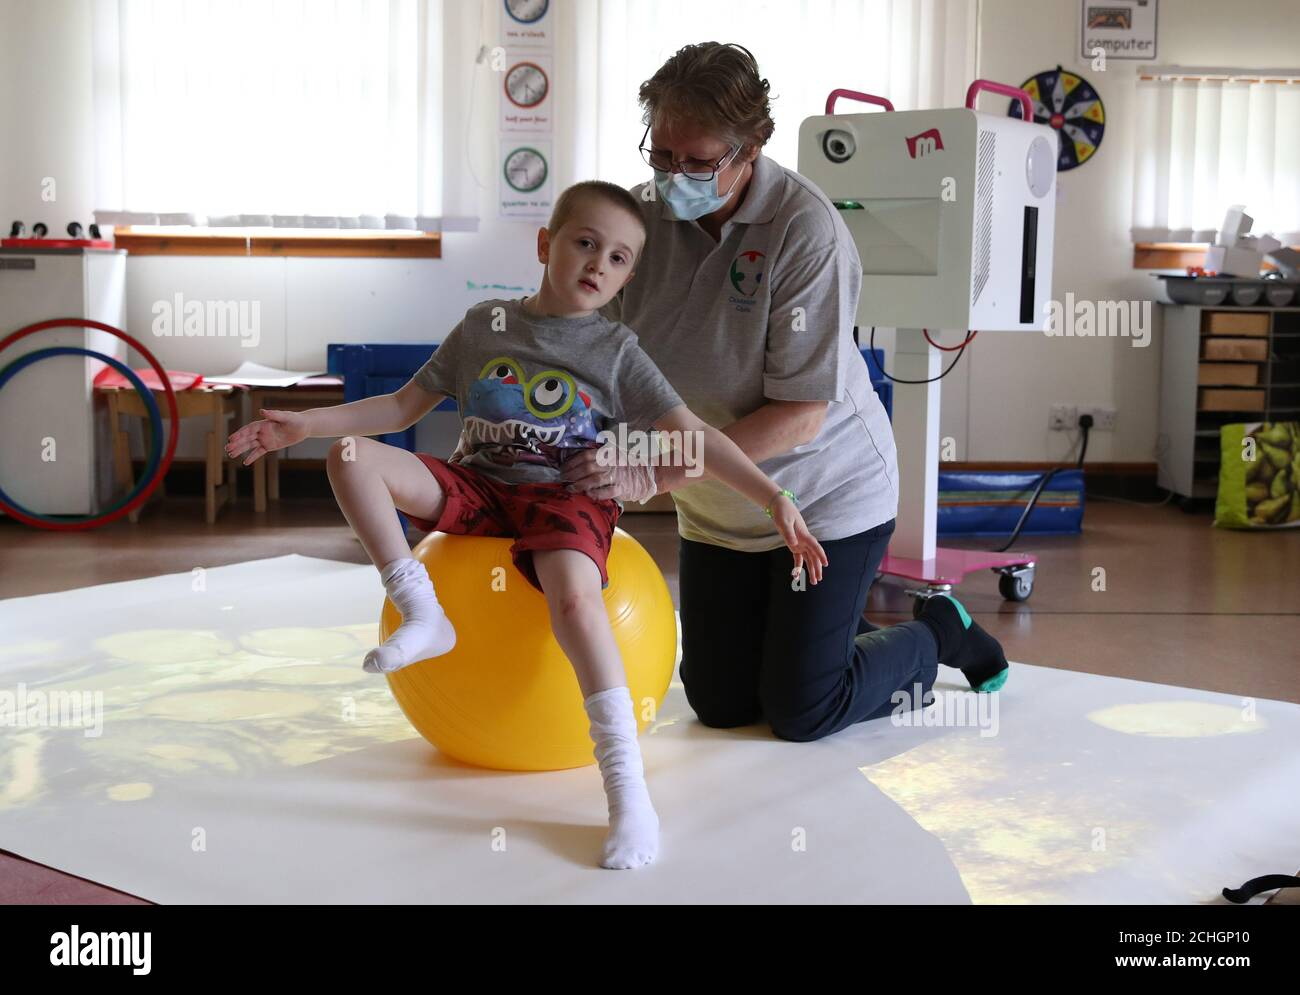 Callum McMichael alongside Paediatric Physiotherapist Kath Brimlow as he takes part in 1:1 session supporting development of posture and movement skills at the Craighalbert Centre. Coronavirus adaptations have been installed at the Scottish Centre for Children with Motor Impairments, Craighalbert Centre, Cumbernauld, as Scotland continues gradually lifting coronavirus lockdown measures. Stock Photo